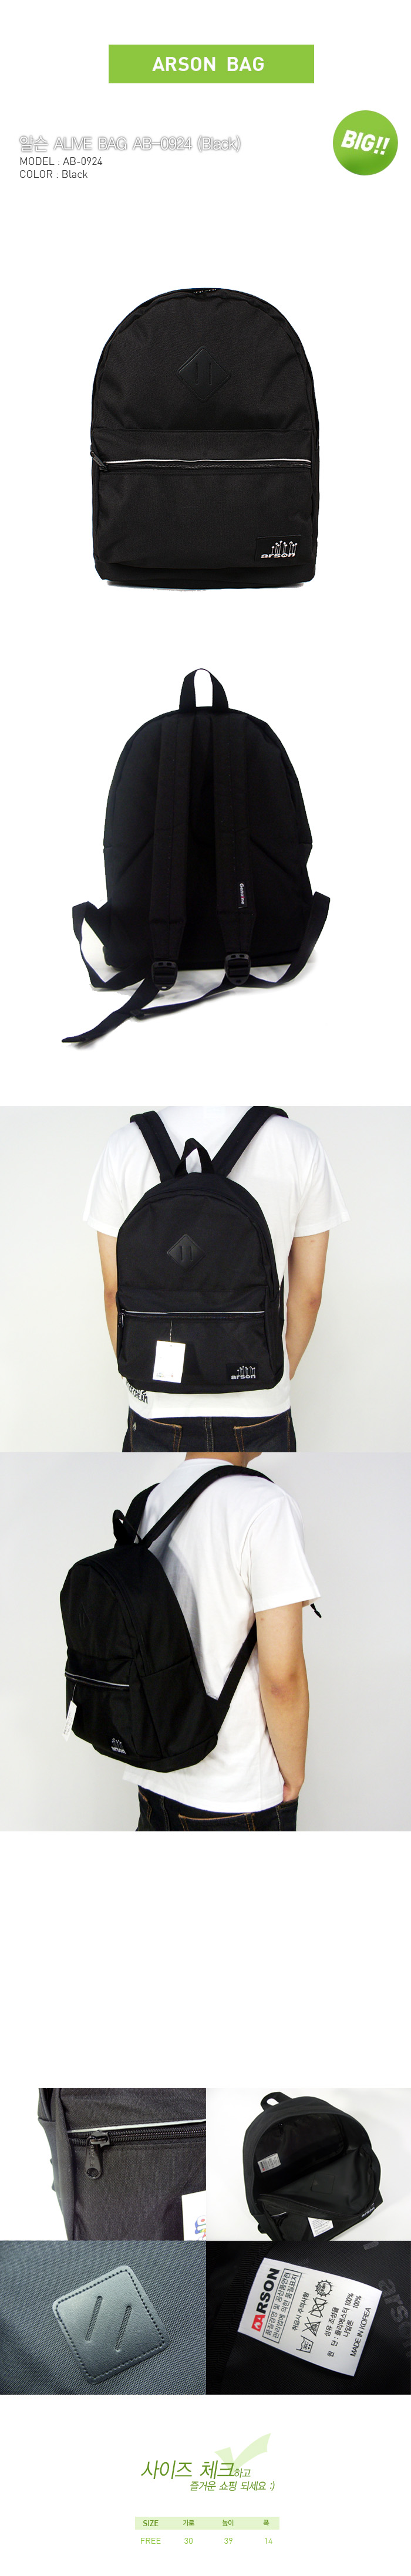 [ ARSON ] AB-0924 (Black)/Backpack School Bag